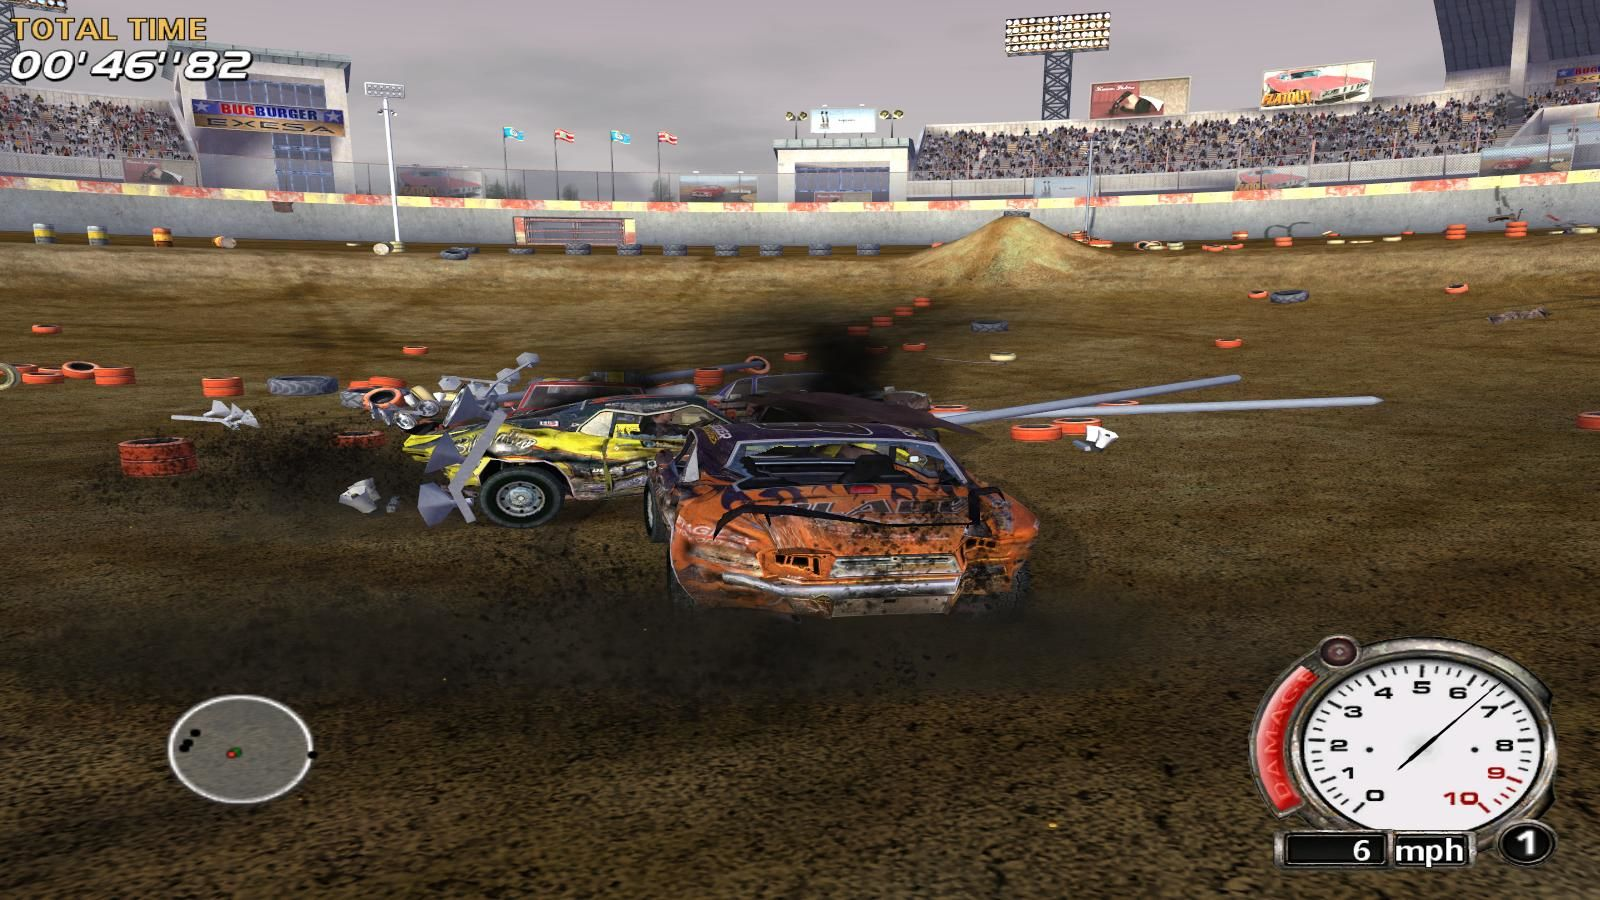 FlatOut Windows Last destruction derby which gets unlocked provides a great opportunity to grind money.